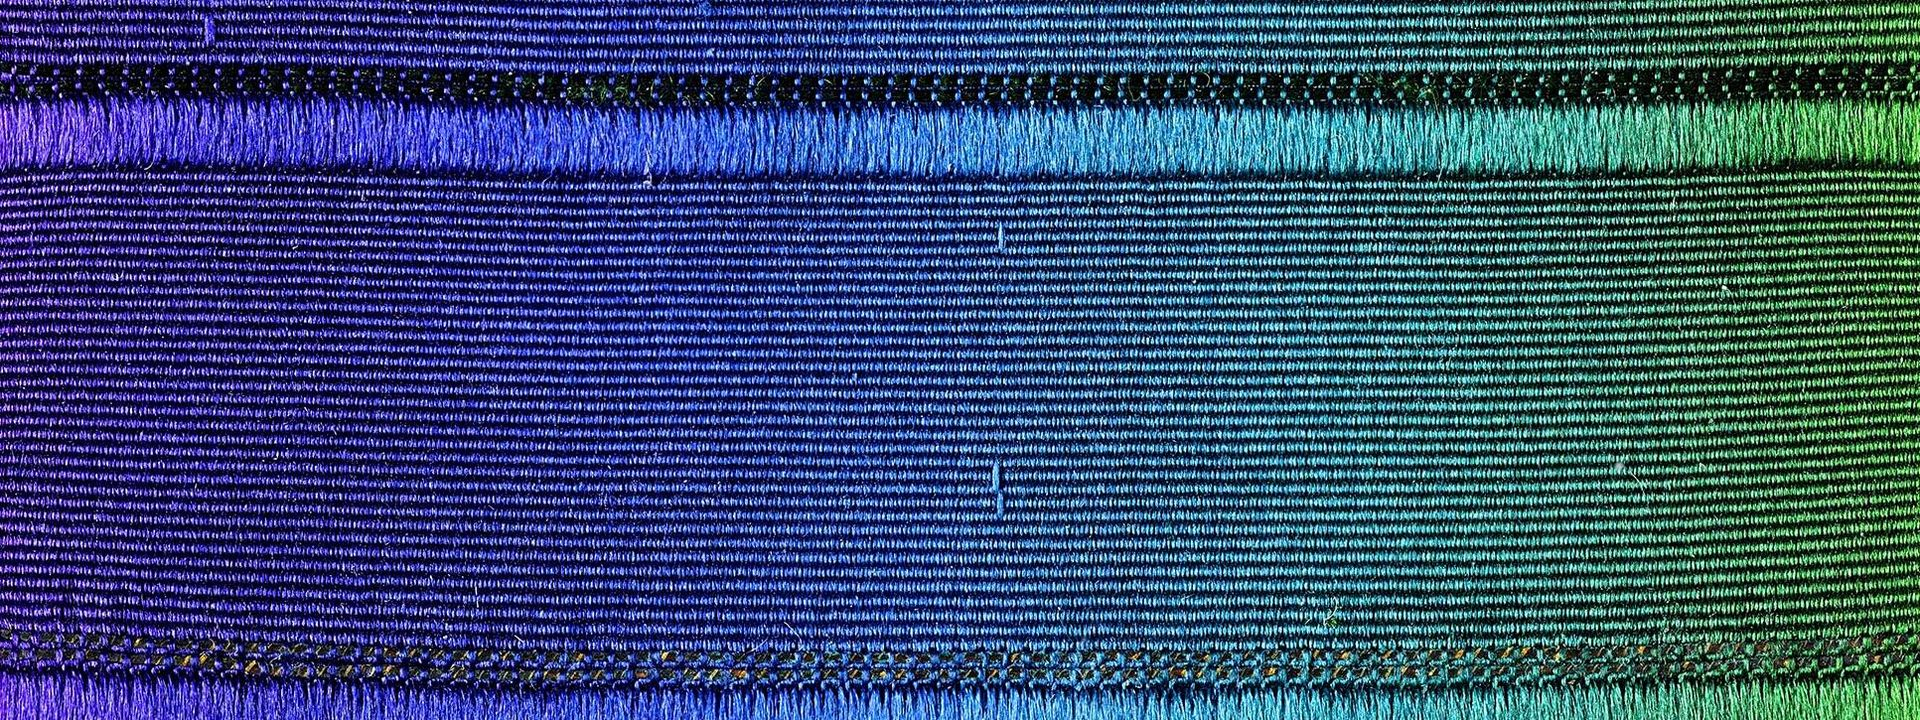 Close-up of a woven strap whose color fades from violet to blue to green.